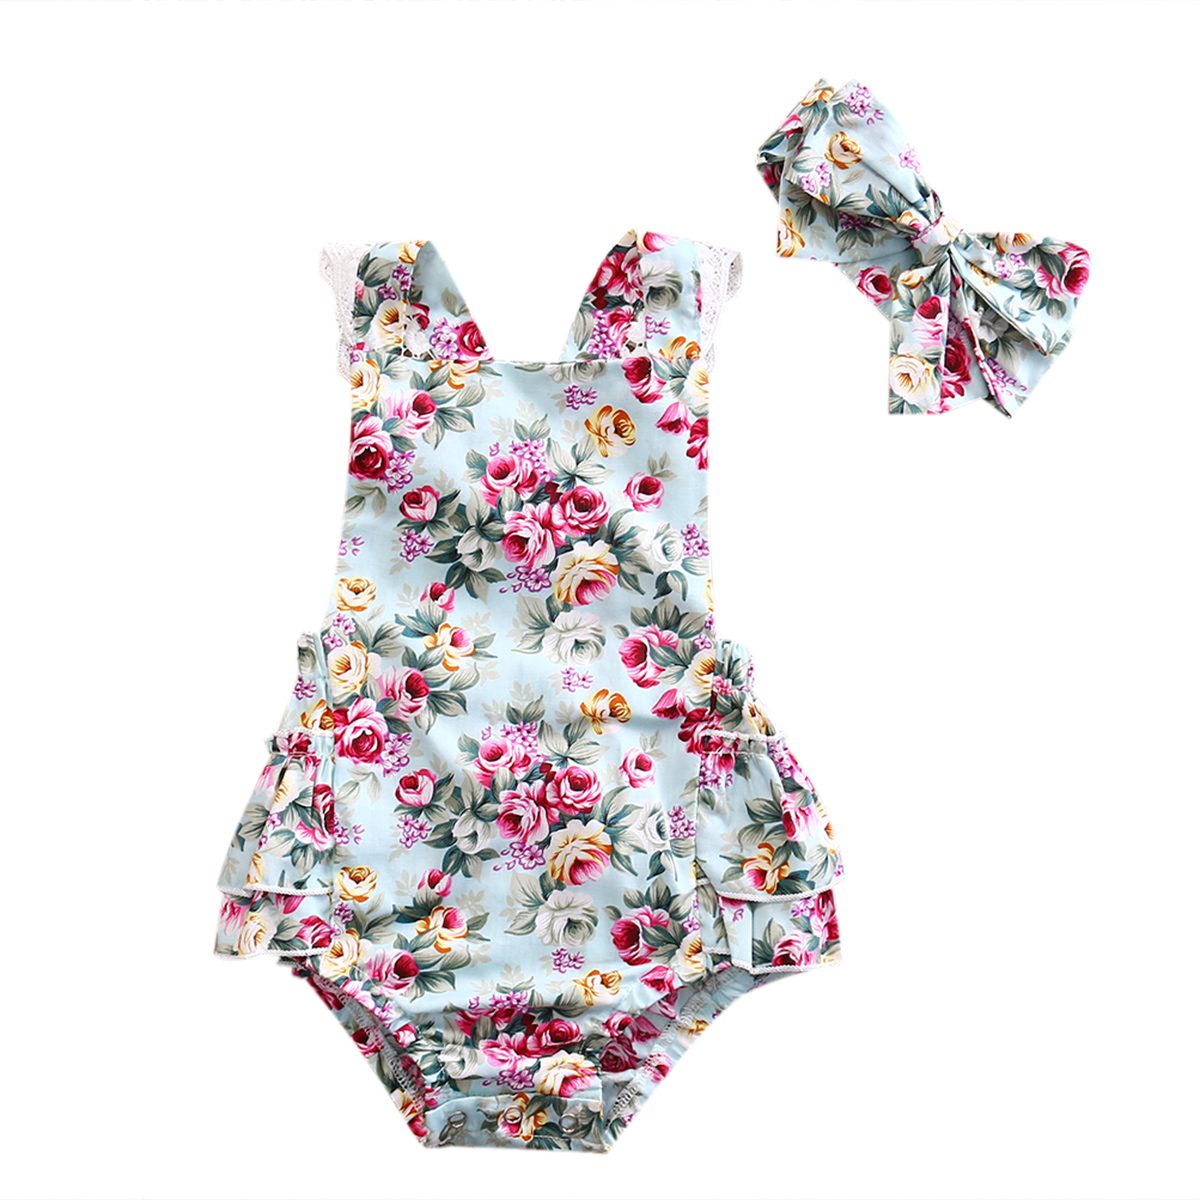 2PCS Newborn Floral Baby Girl Clothes 2019 Summer Sleeveless Cotton Ruffles Baby Bodysuit + Headband Outfits Sunsuit Playsuit